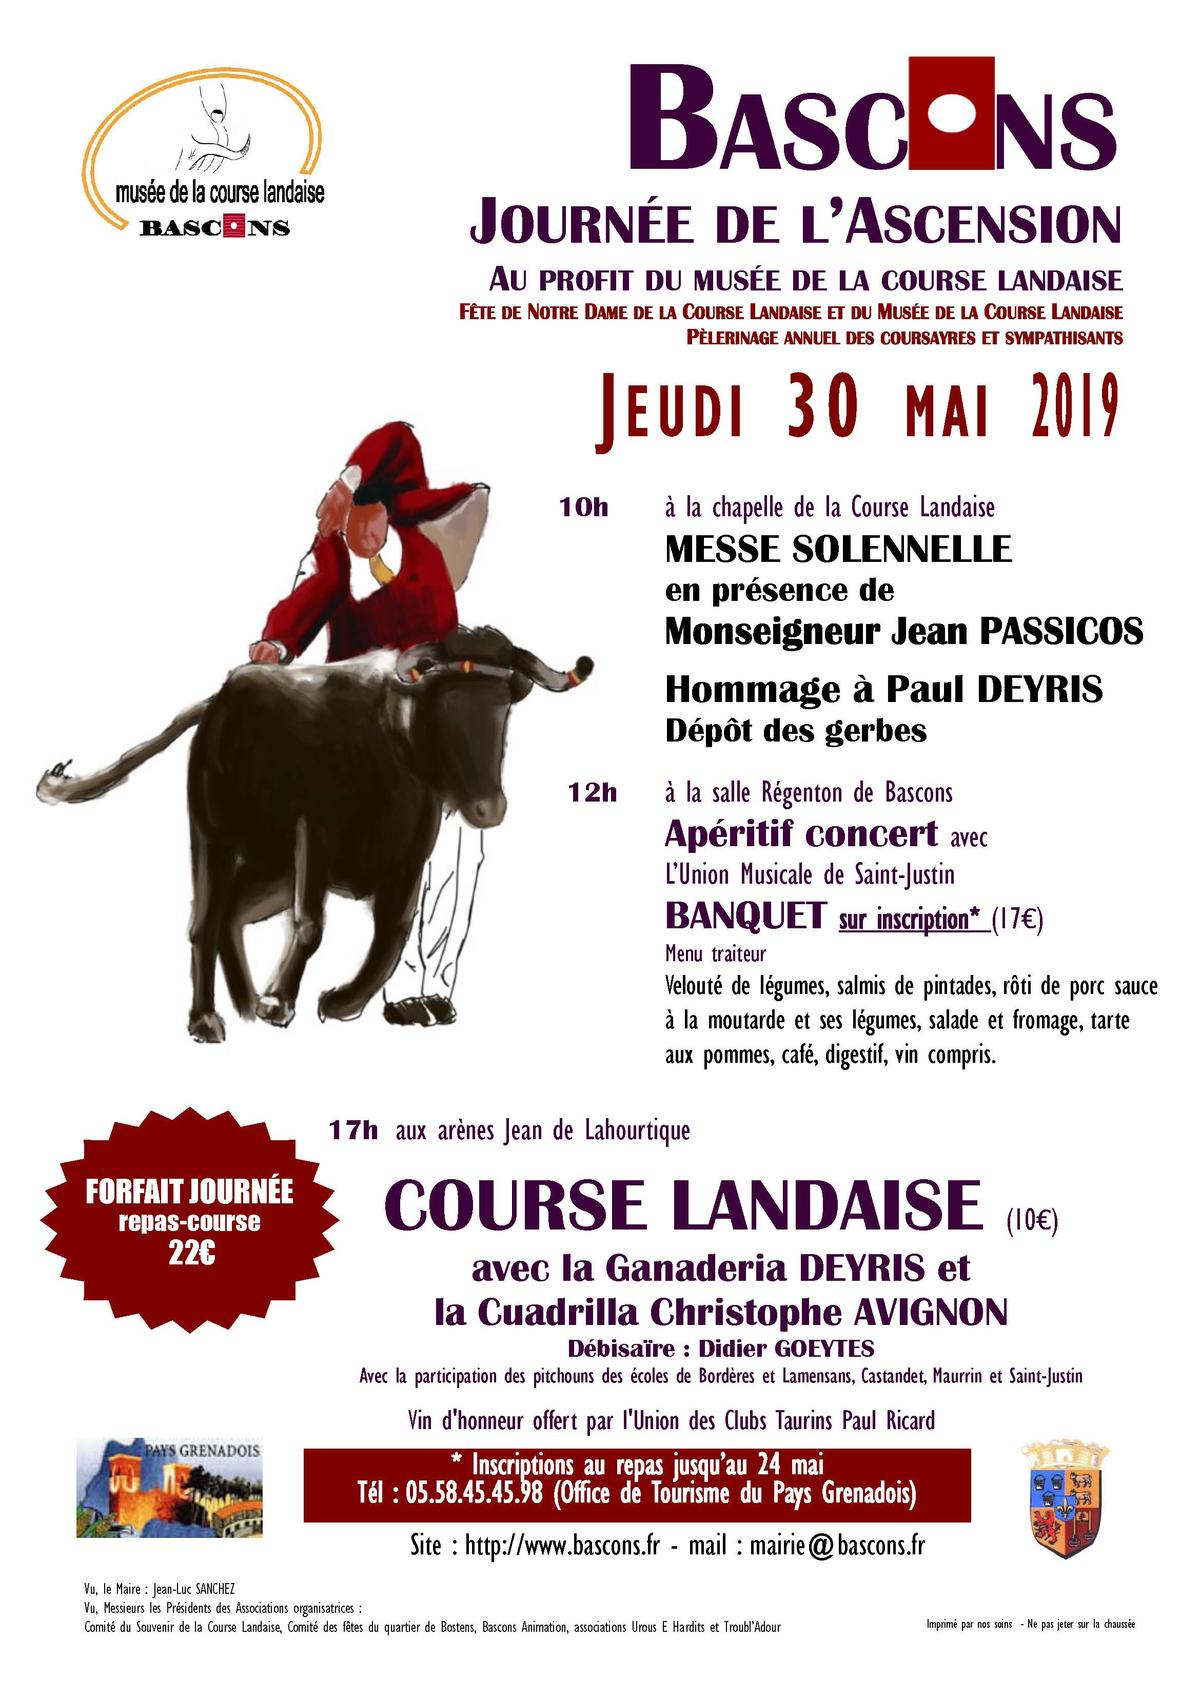 Affiche ASCENSION 30 mai 2019 Bascons